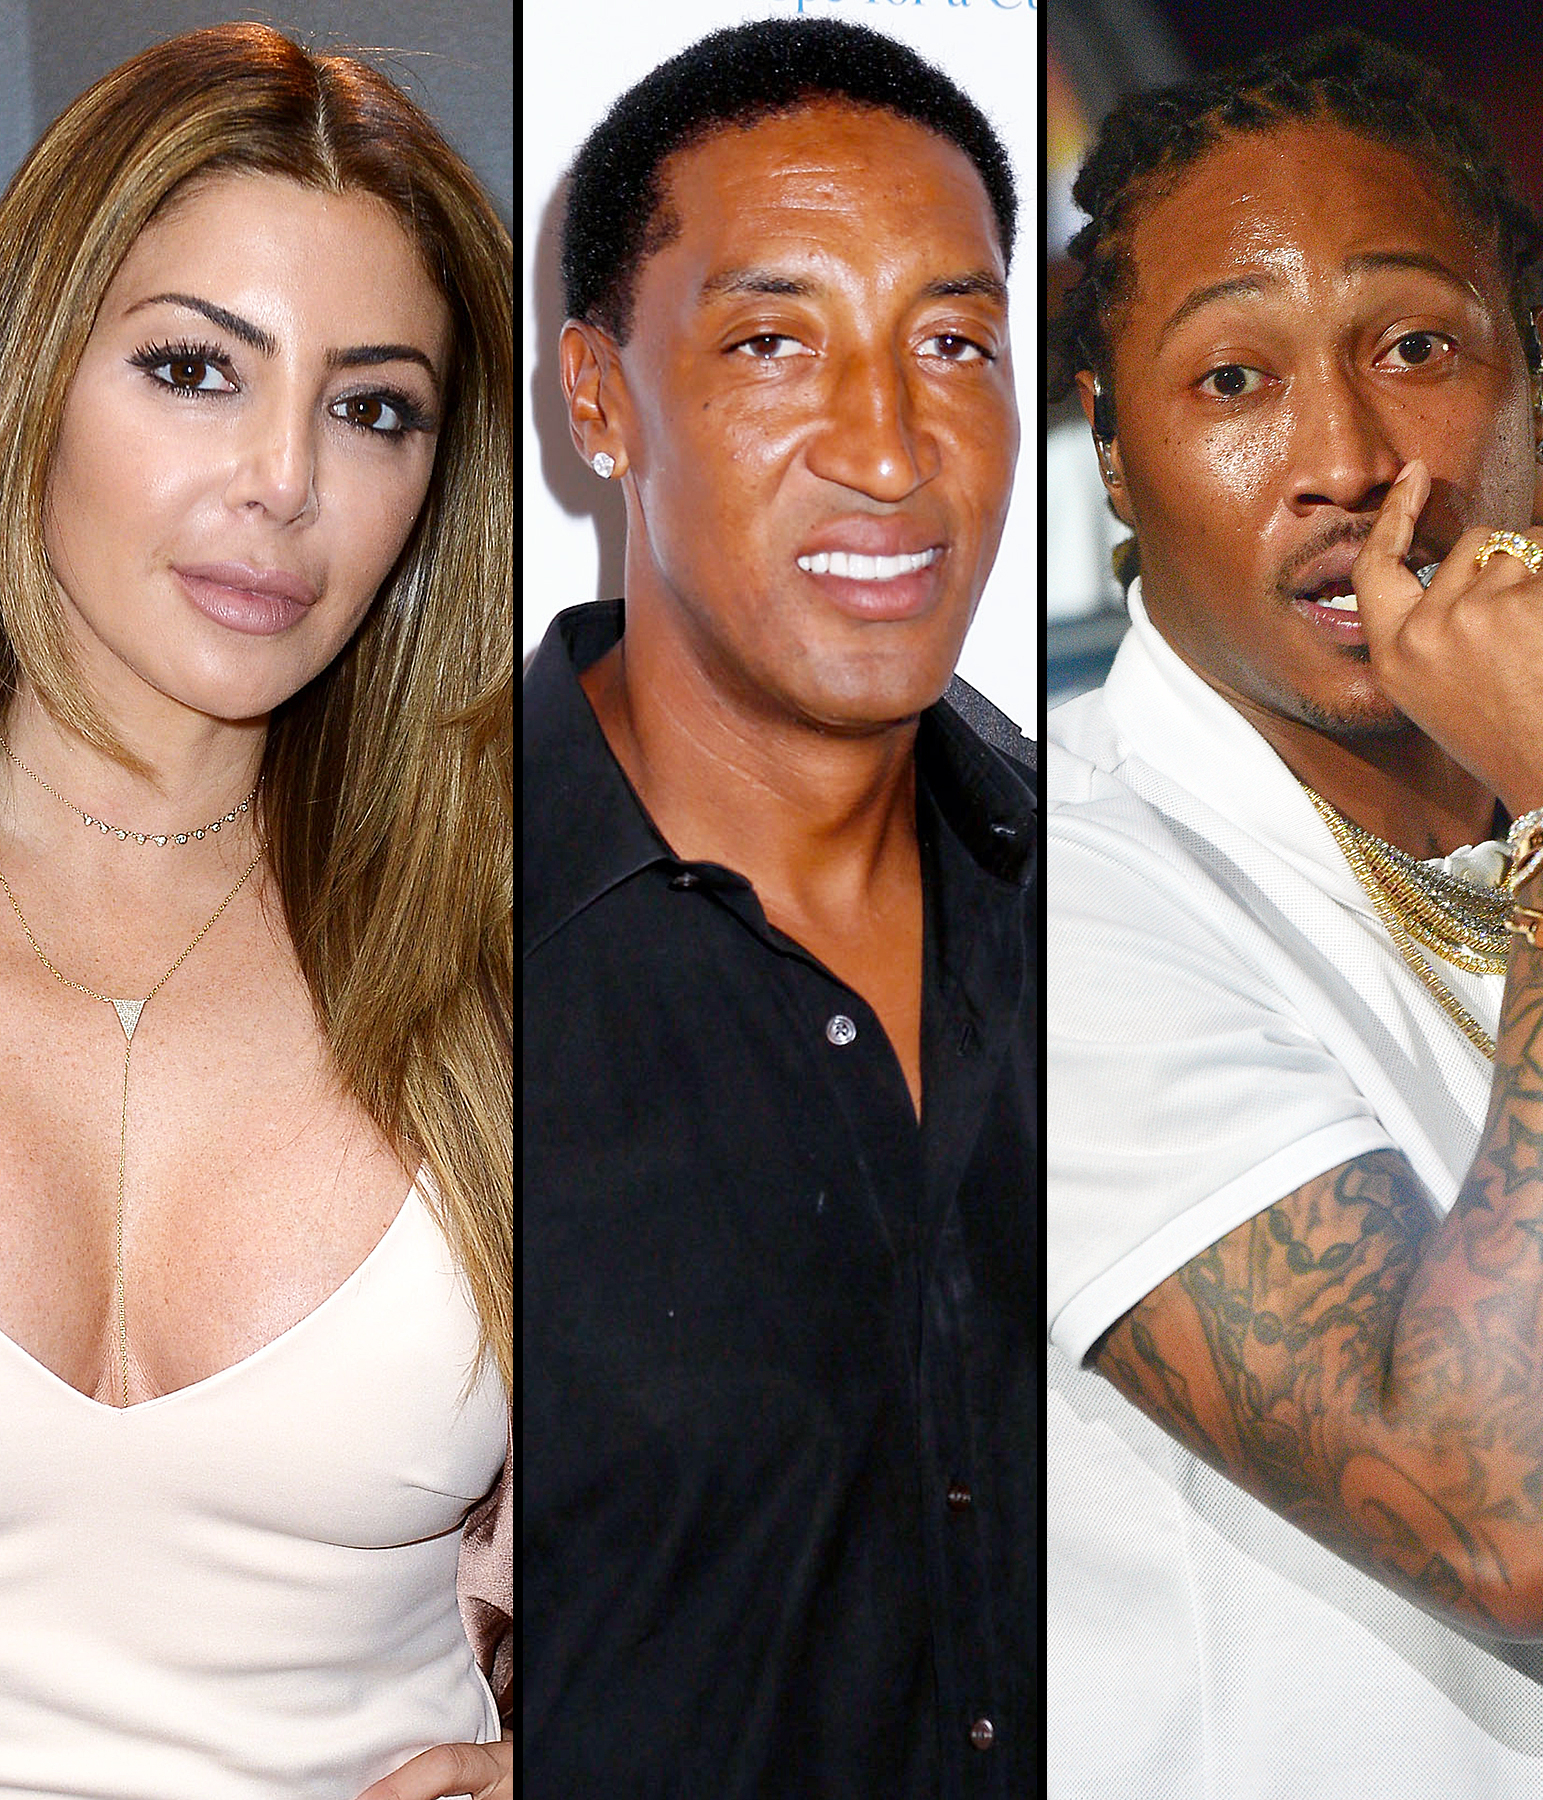 Who is rapper future dating 2019